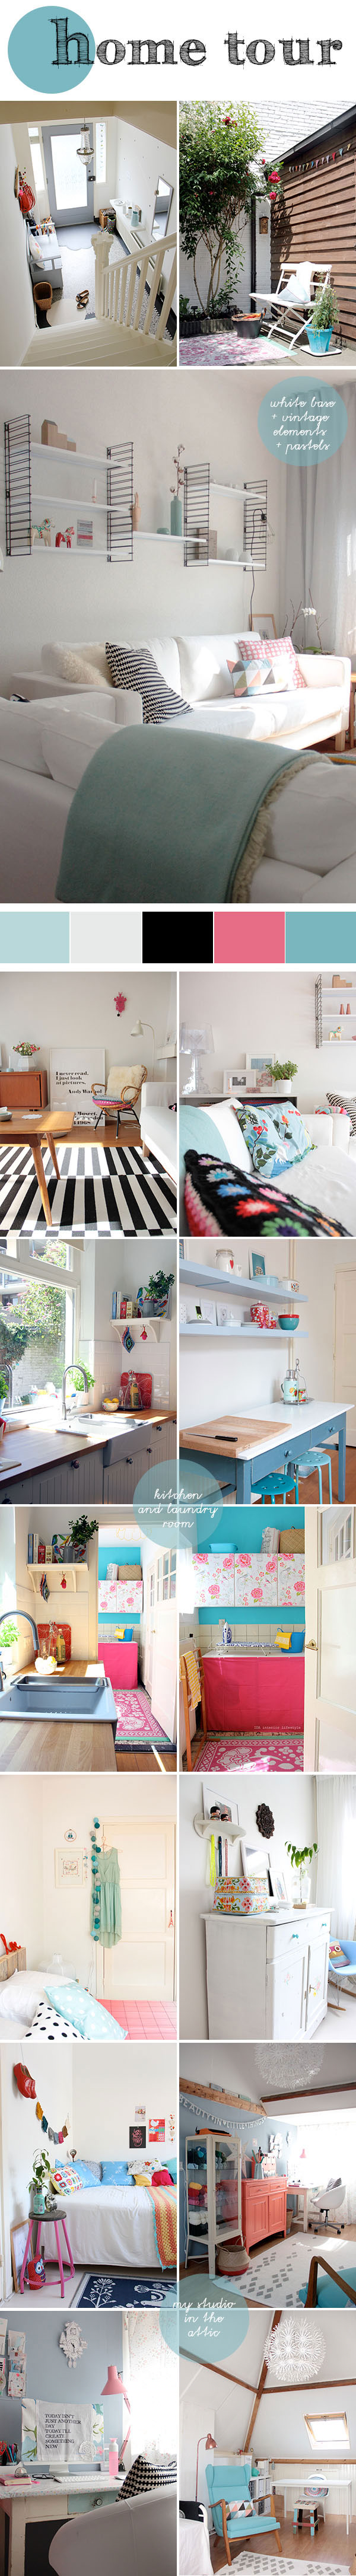 Home Tour_The_Happy_House